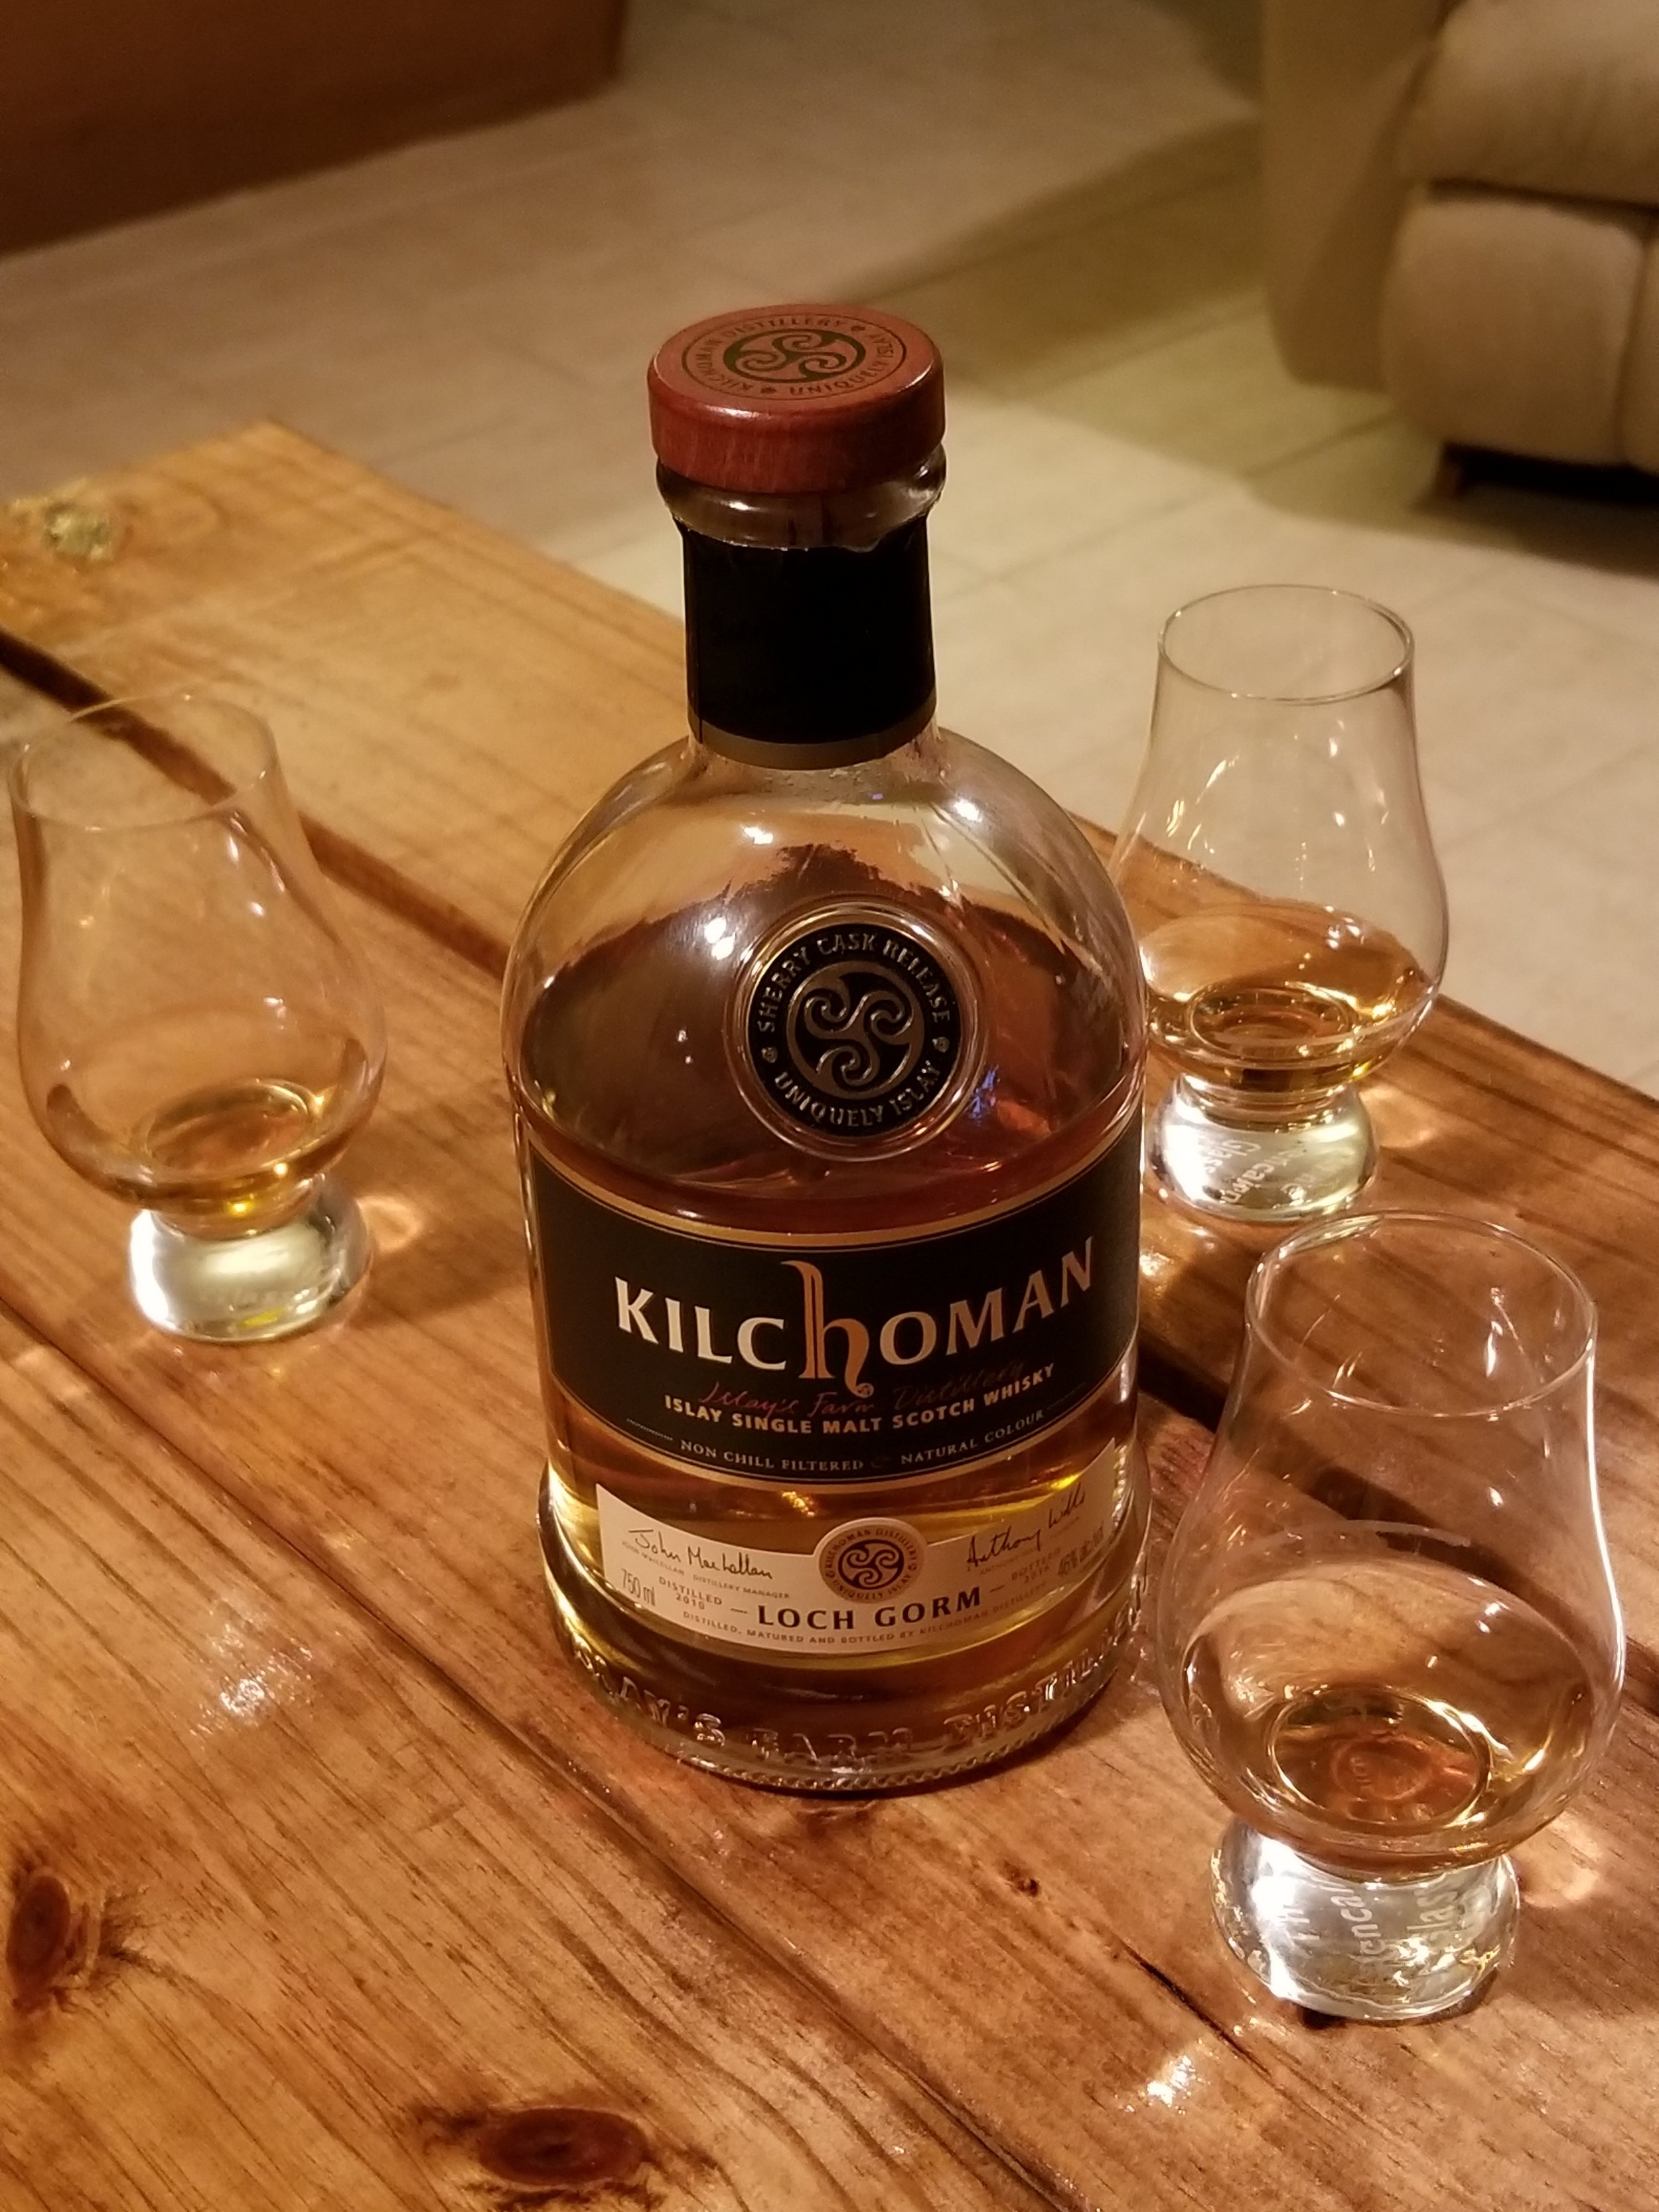 Episode the 12th - Kilchoman Whisky Review, Tombstone, Top Gun, Military Planes, Technology and Star Wars